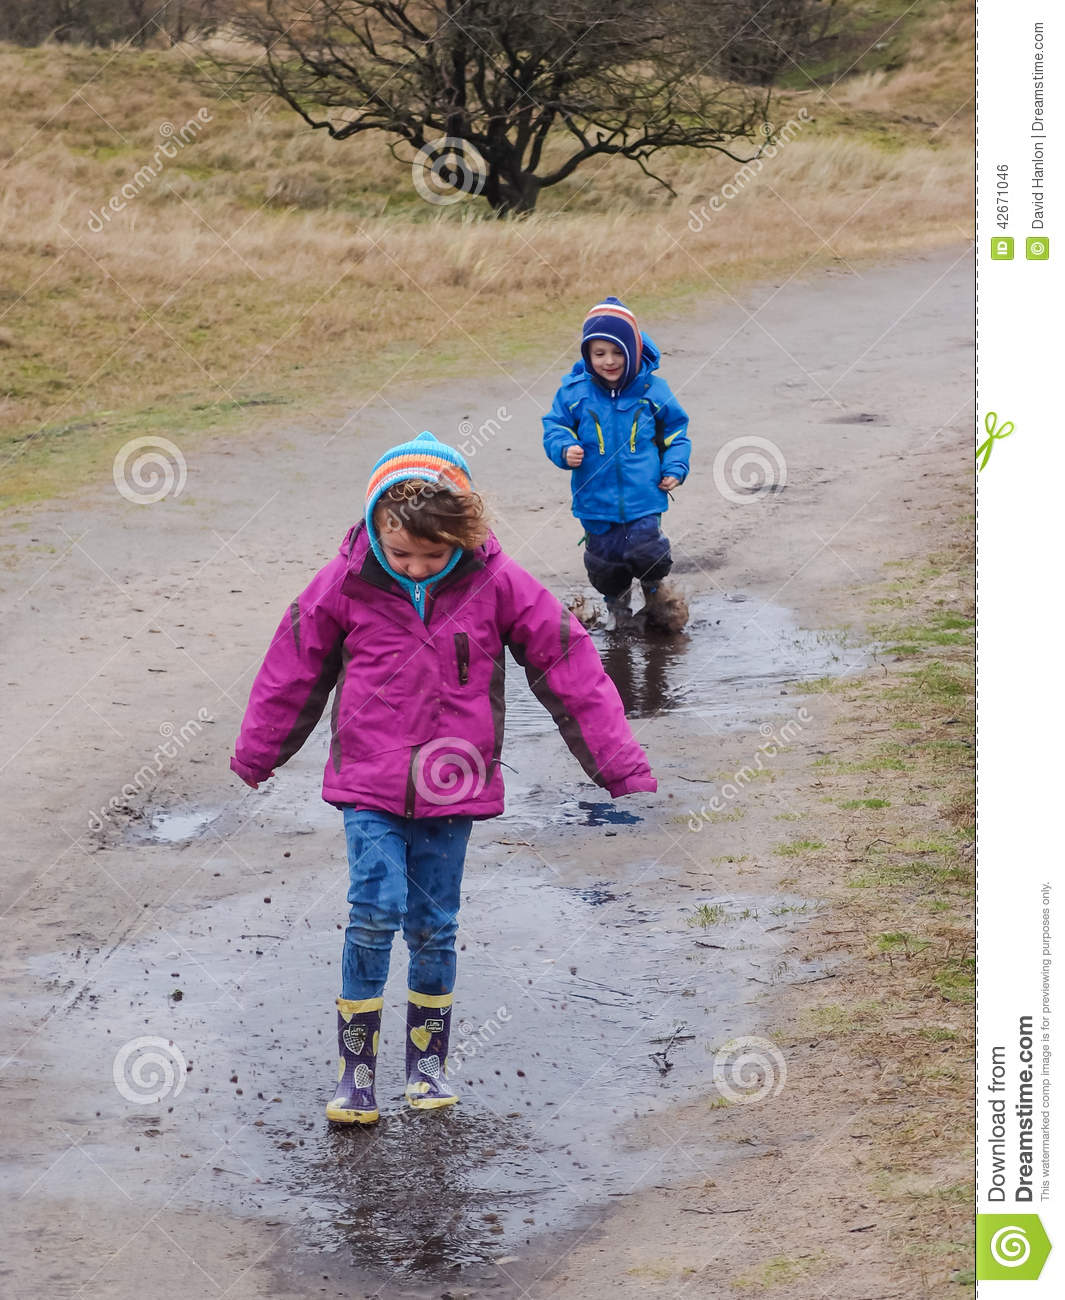 Boy and girl splashing in a muddy puddle